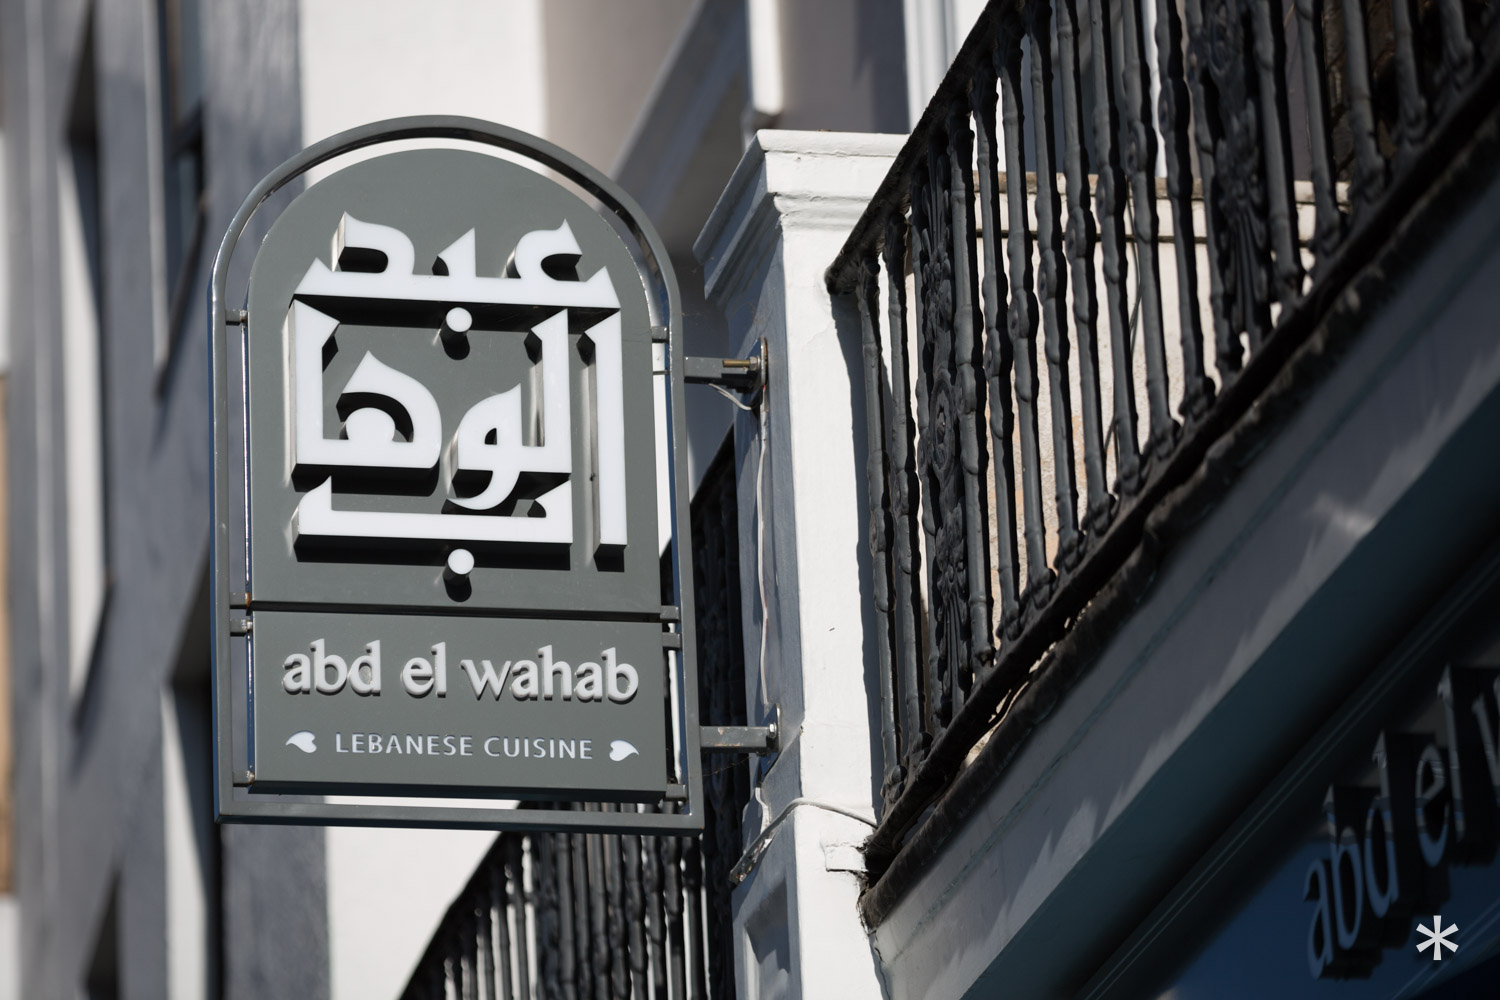 private events, healthy food, authentic, Lebanese restaurant, Lebanese cuisine, Lebanese food, delivery, London, UK, abdelwahab.co.uk